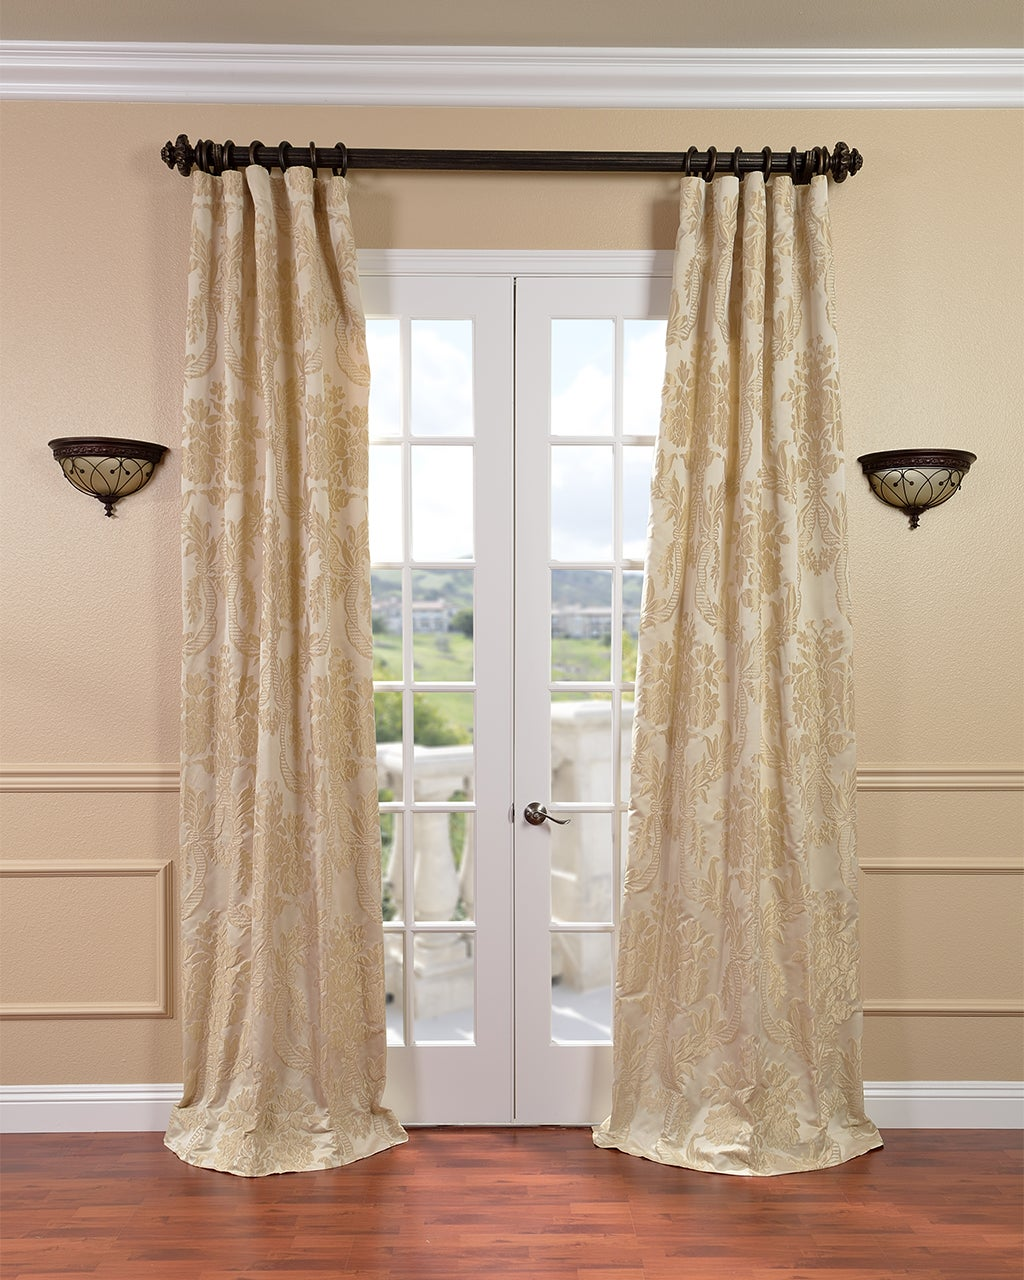 Faux Silk Curtains Overstock Shopping Stylish Drapes